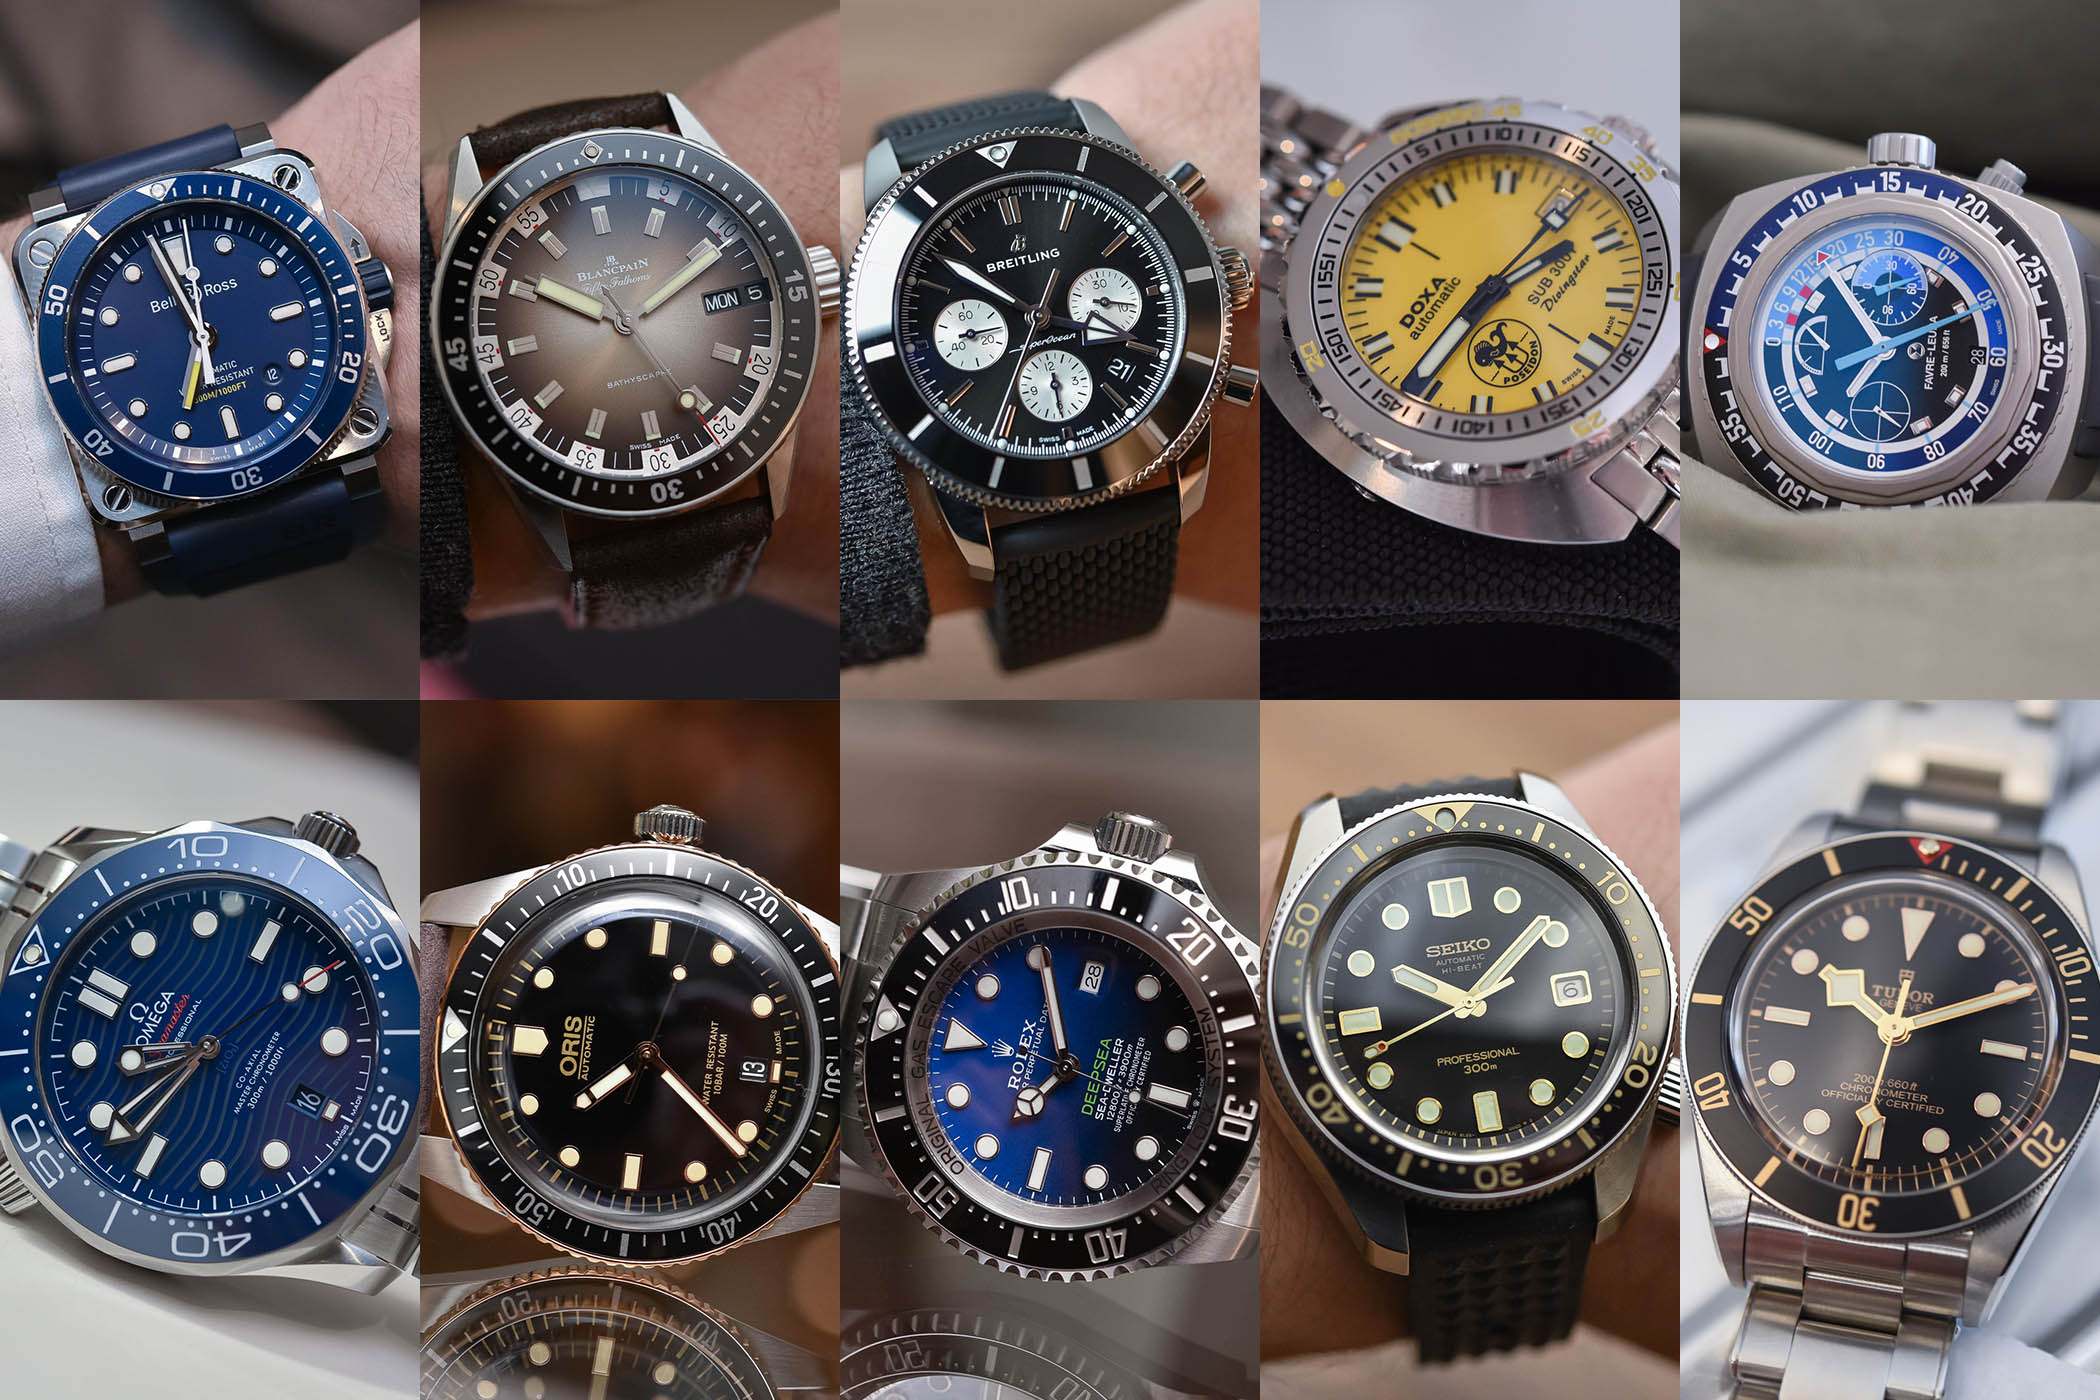 Best Dive Watches Baselworld 2018 - buying guide